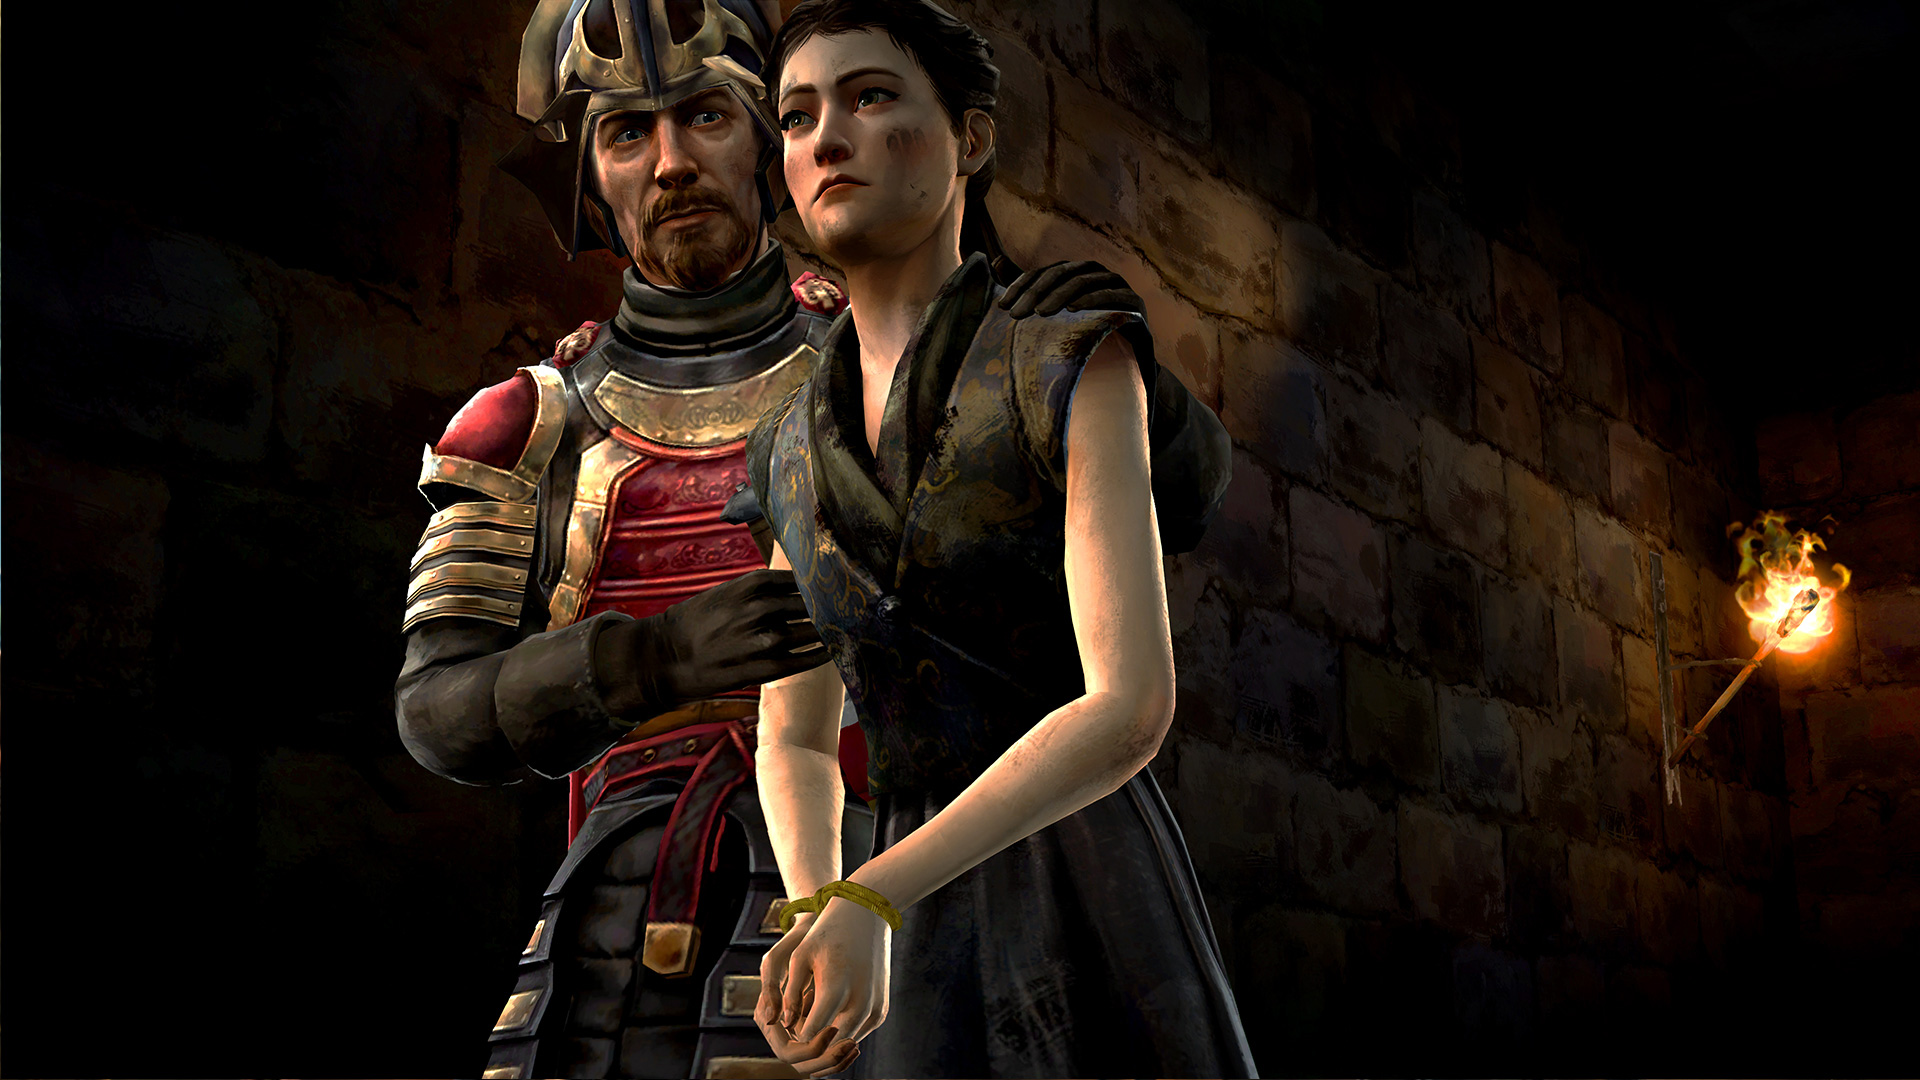 Telltale's Game of Thrones is getting a second season